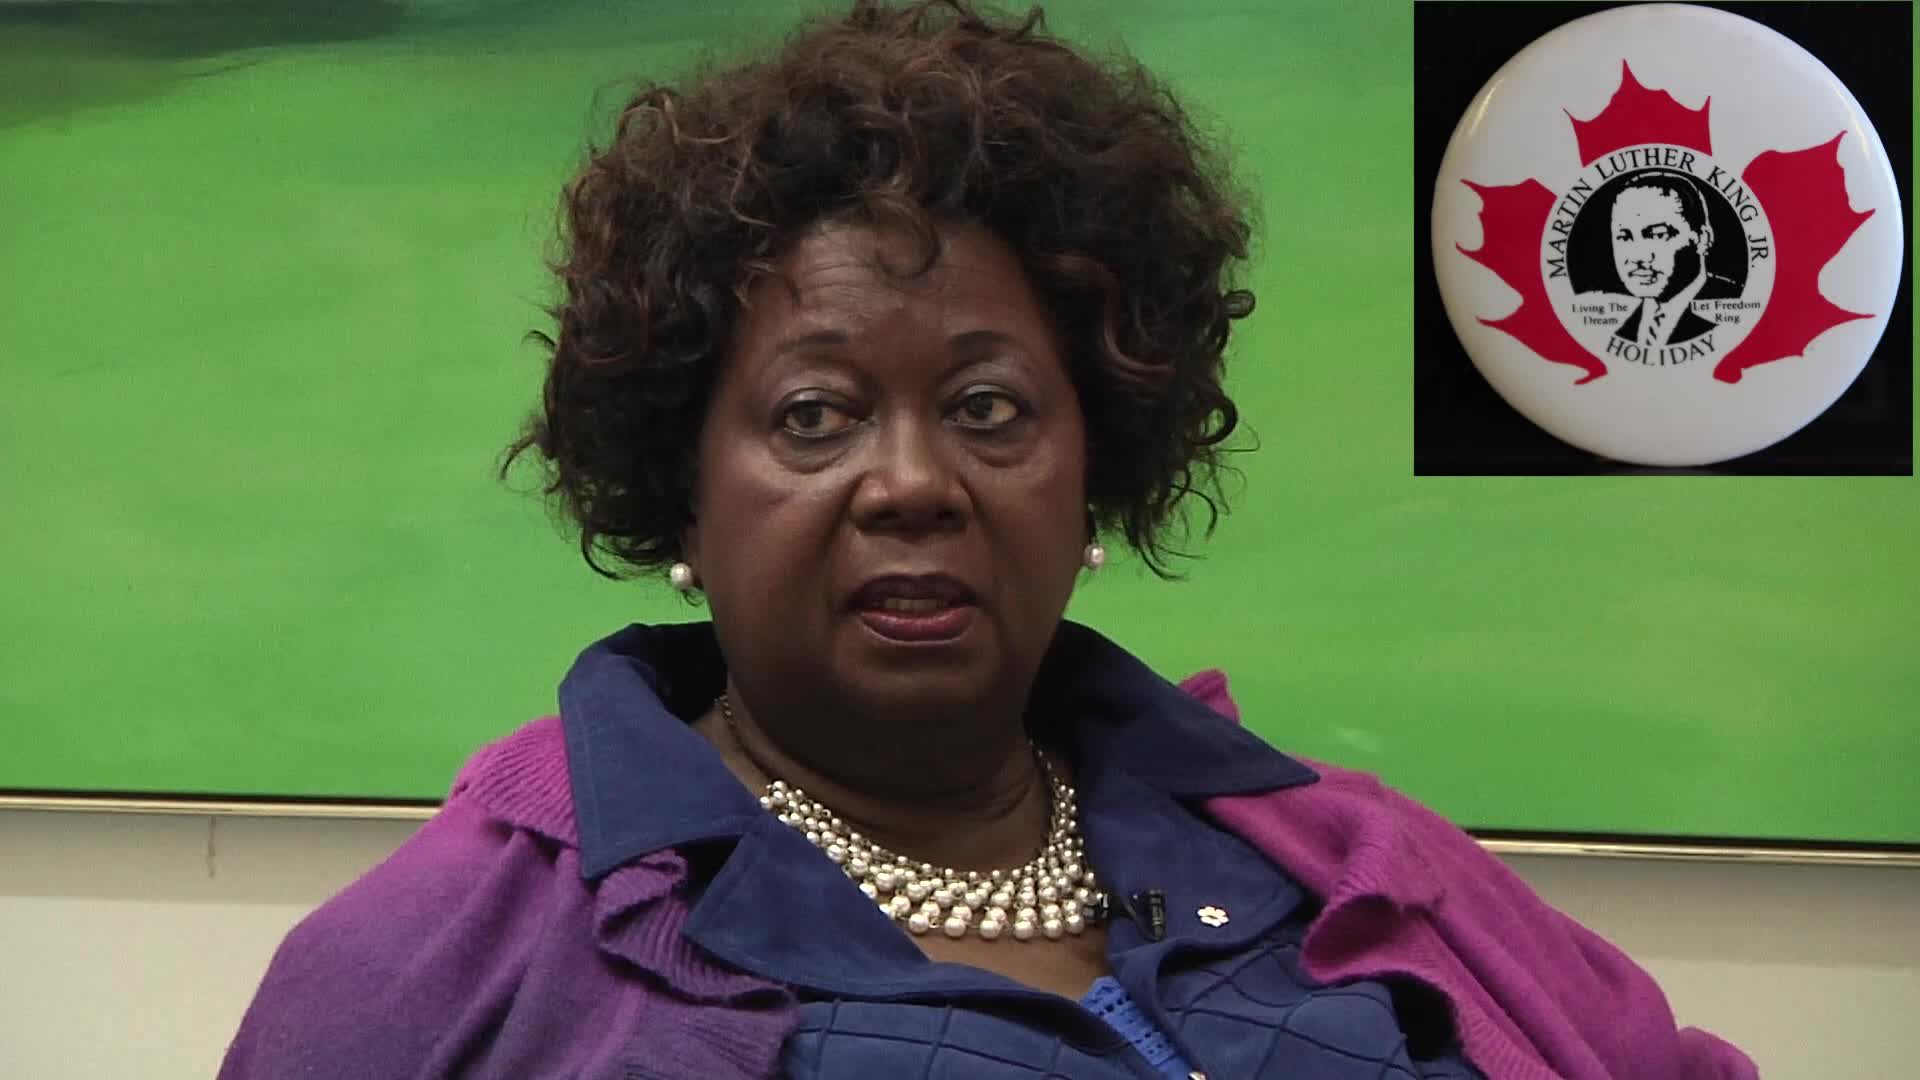 Jean Augustine interview: Martin Luther King Jr. holiday in Canada button